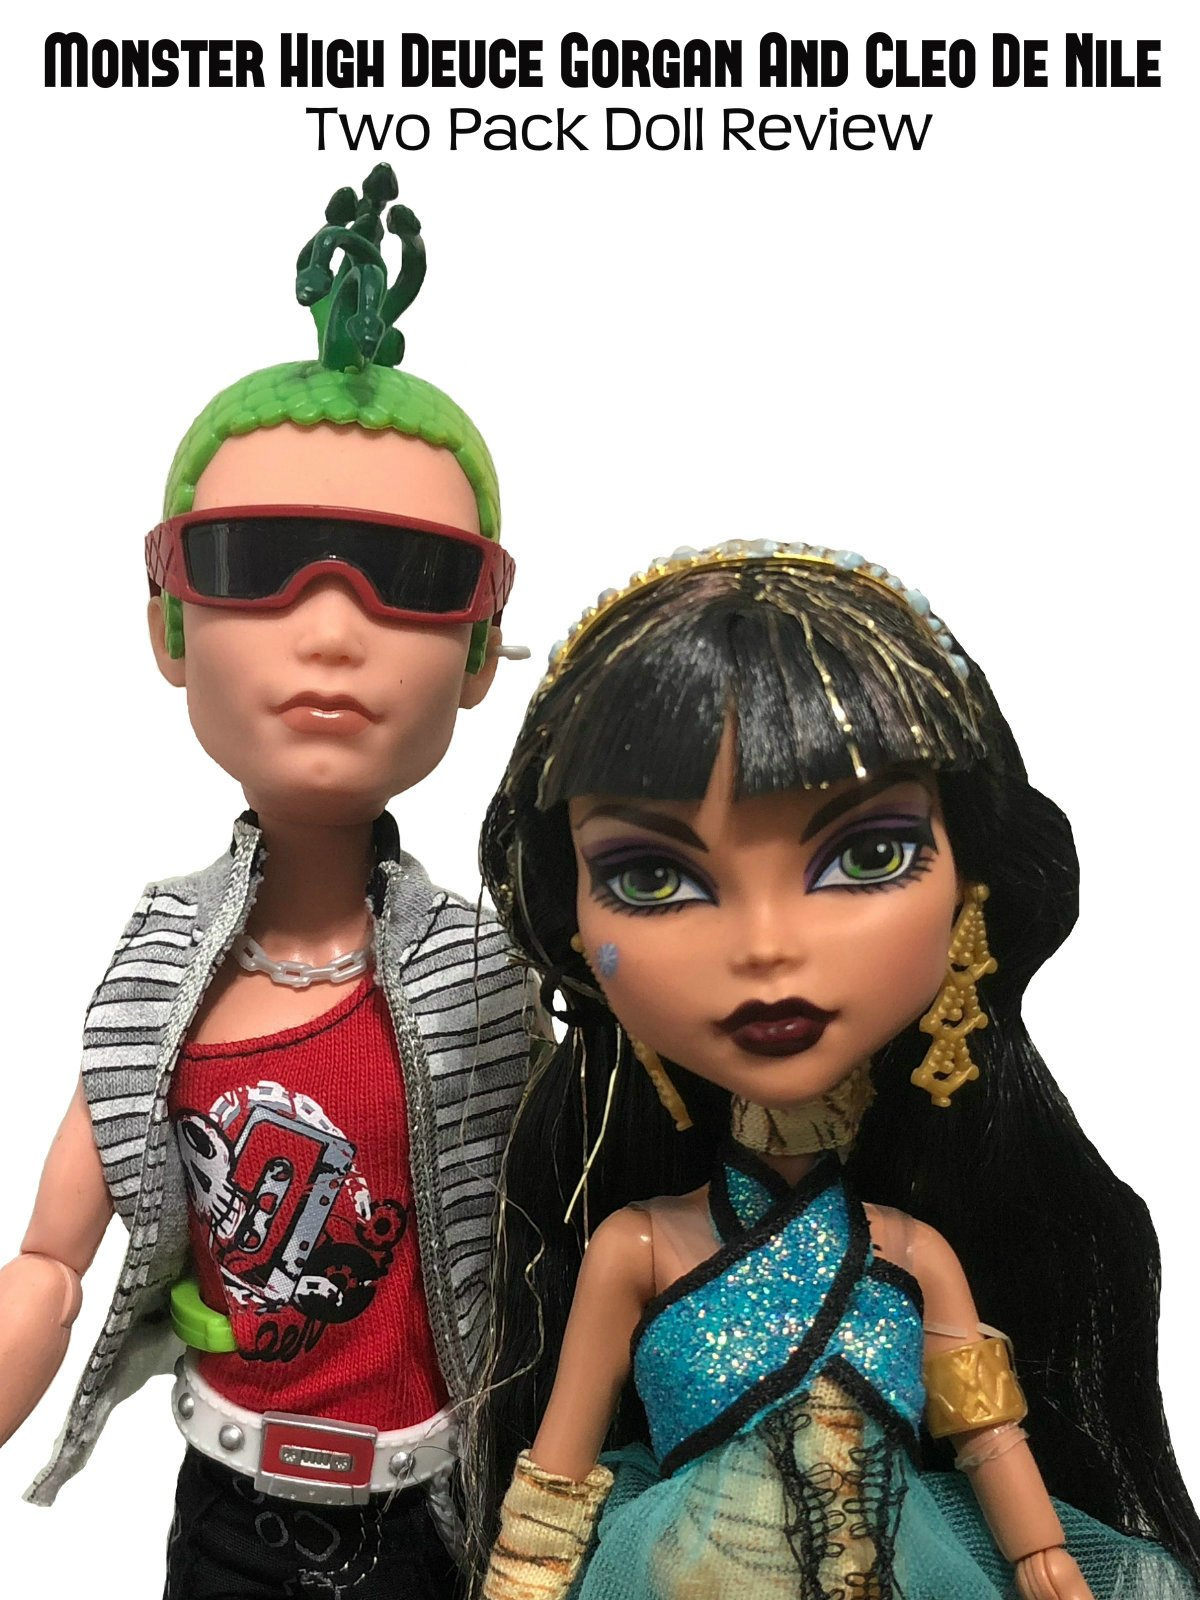 Review: Monster High Deuce Gorgan And Cleo De Nile Two Pack Doll Review